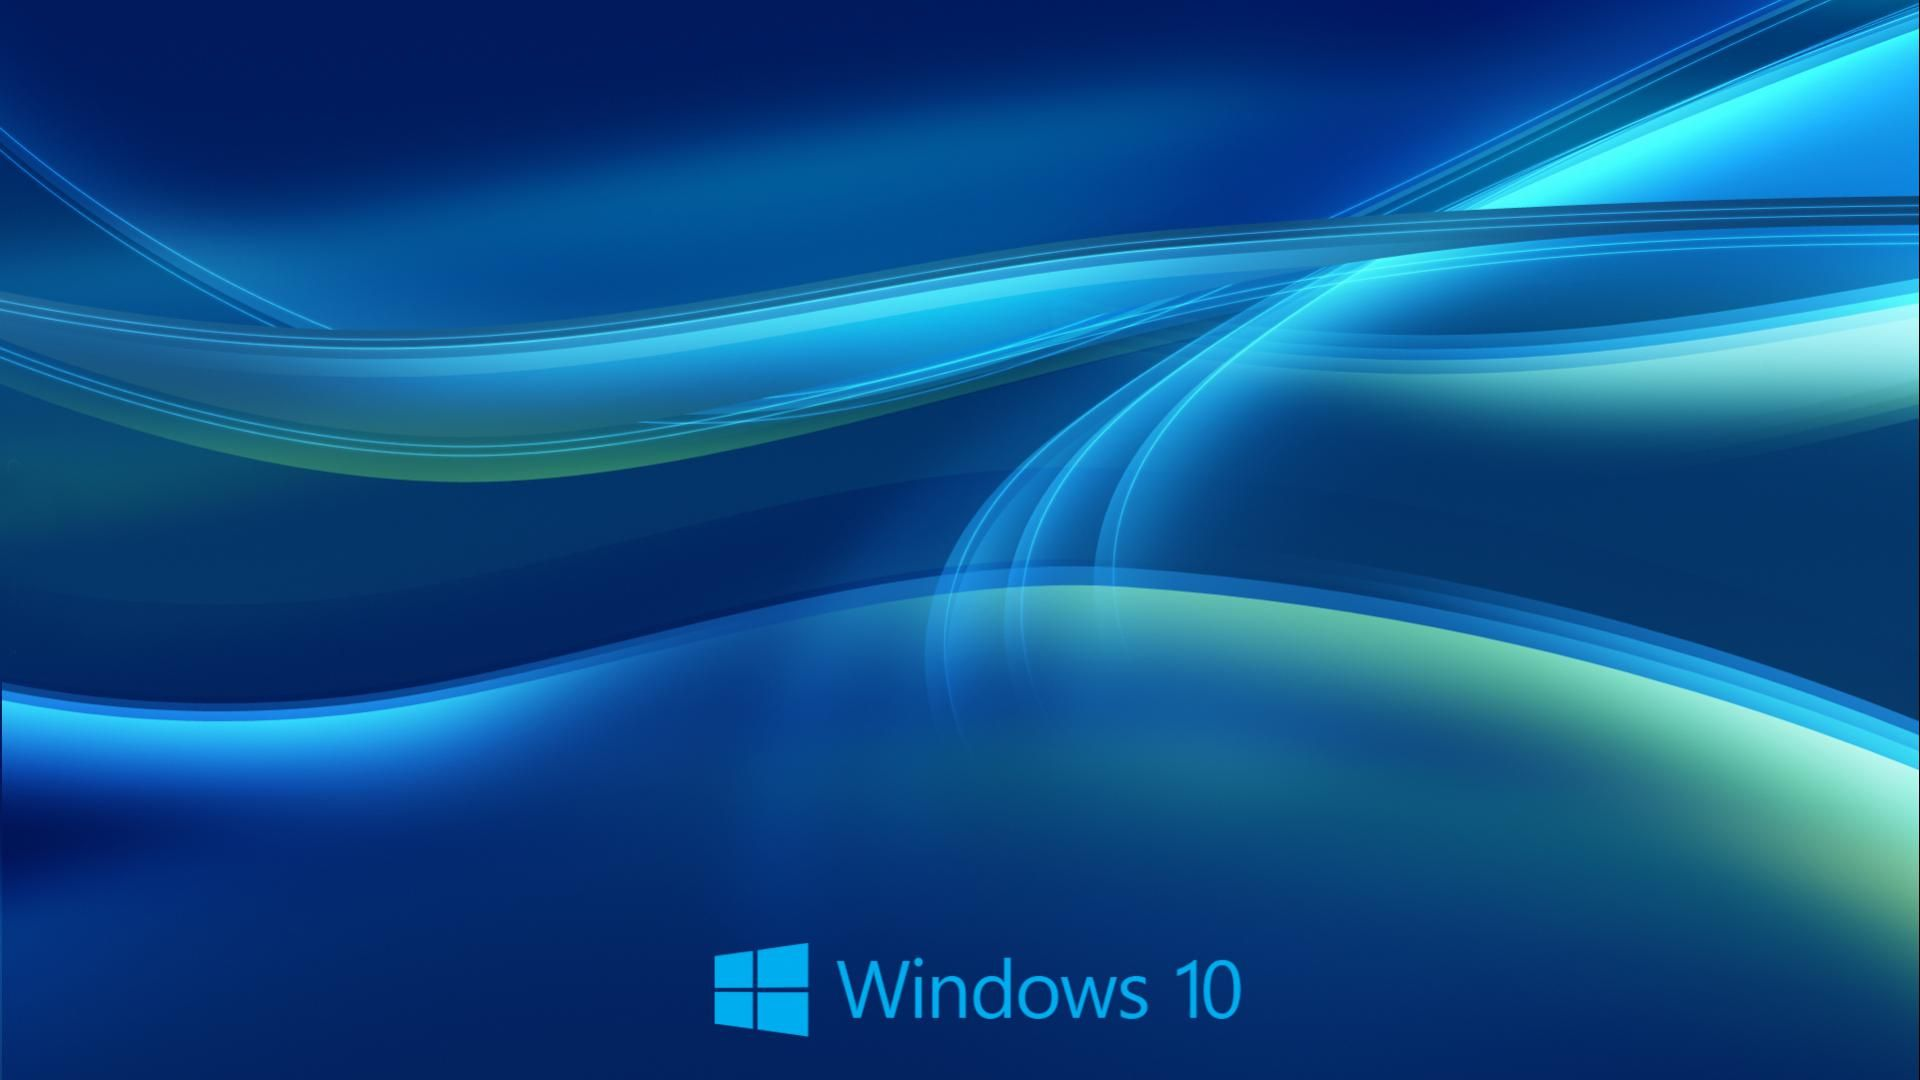 Windows 10 Wallpaper Hd In Blue Abstract With New Logo Hd Wallpapers Wallpapers Download High Resolution Wallpapers Windows 10 Wallpaper Windows 10 Windows 10 Background